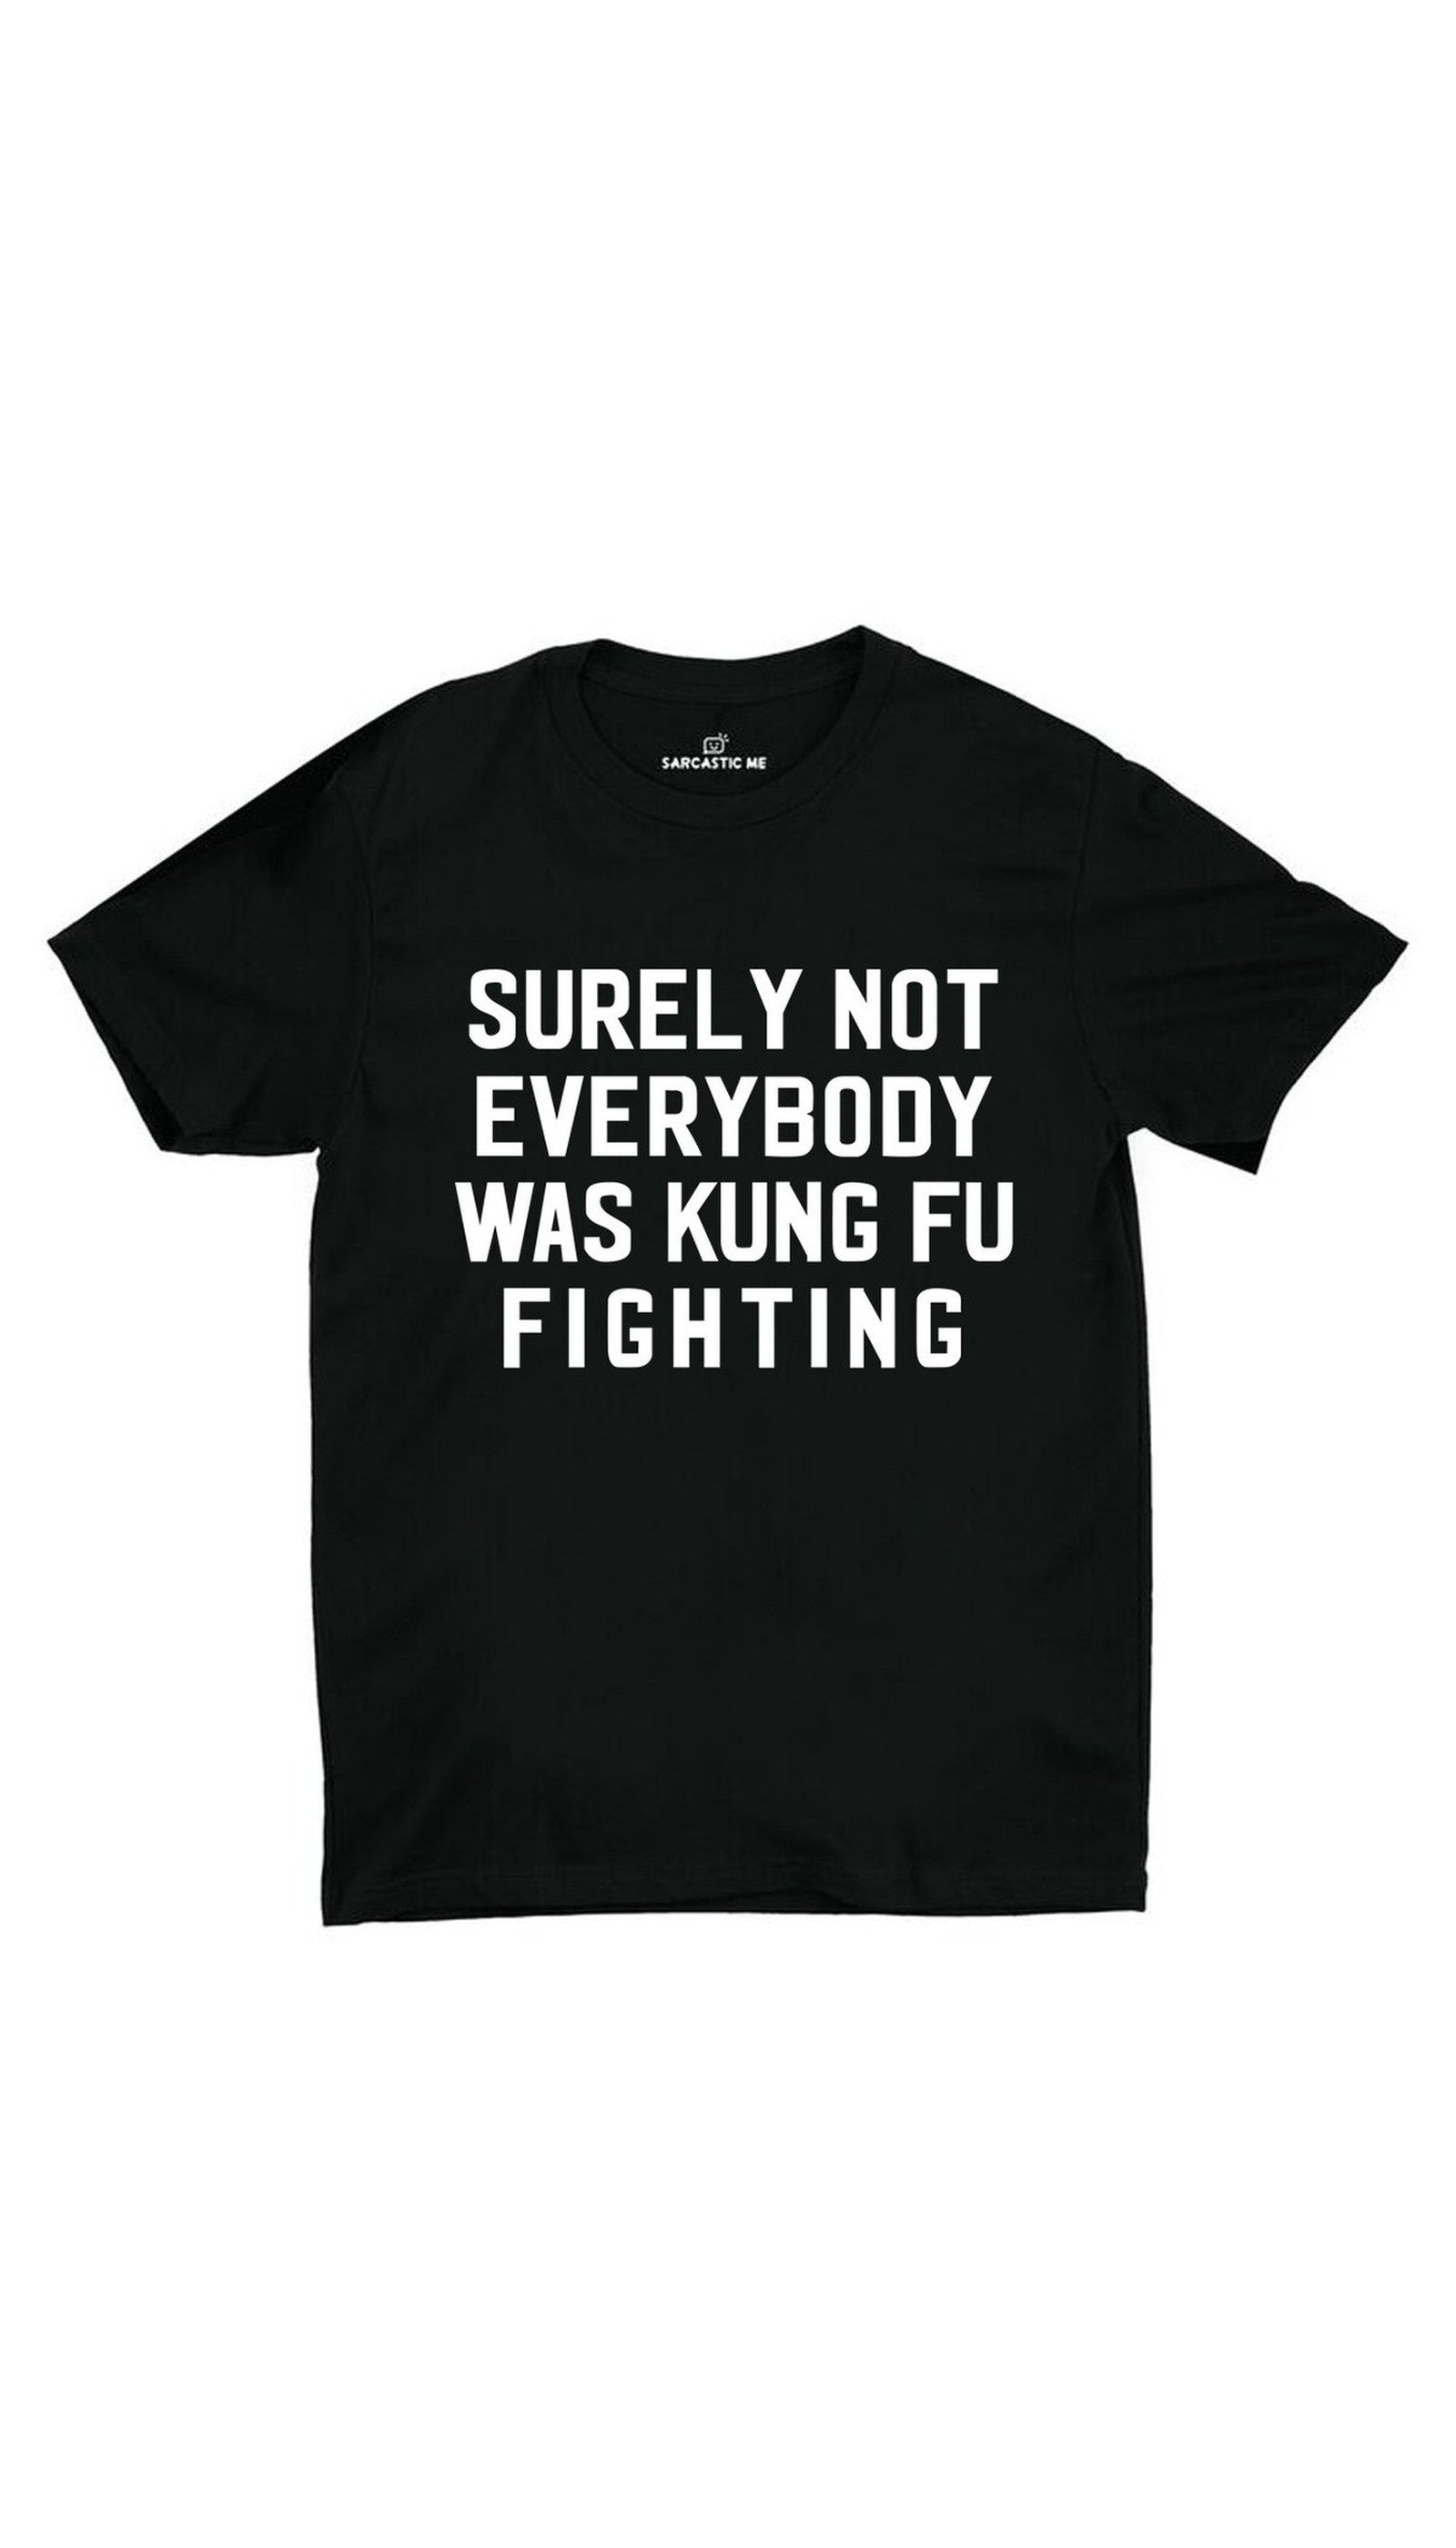 Surely Not Everybody Was Kung Fu Fighting Black Unisex T-shirt | Sarcastic ME